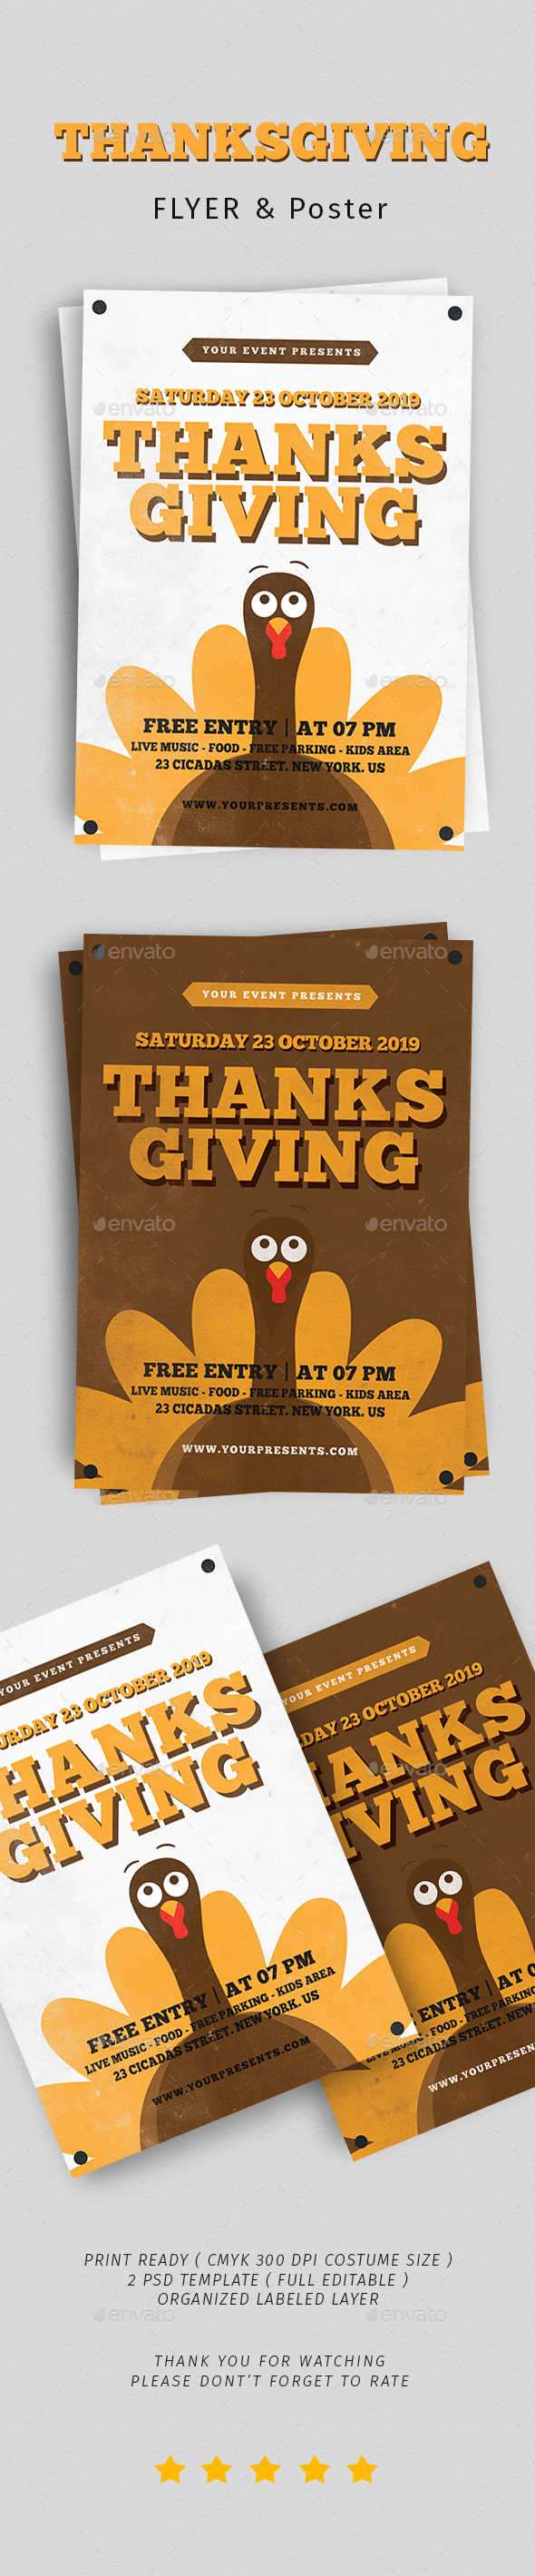 Thanksgiving Flyer Vol. 5 - Flyers Print Templates